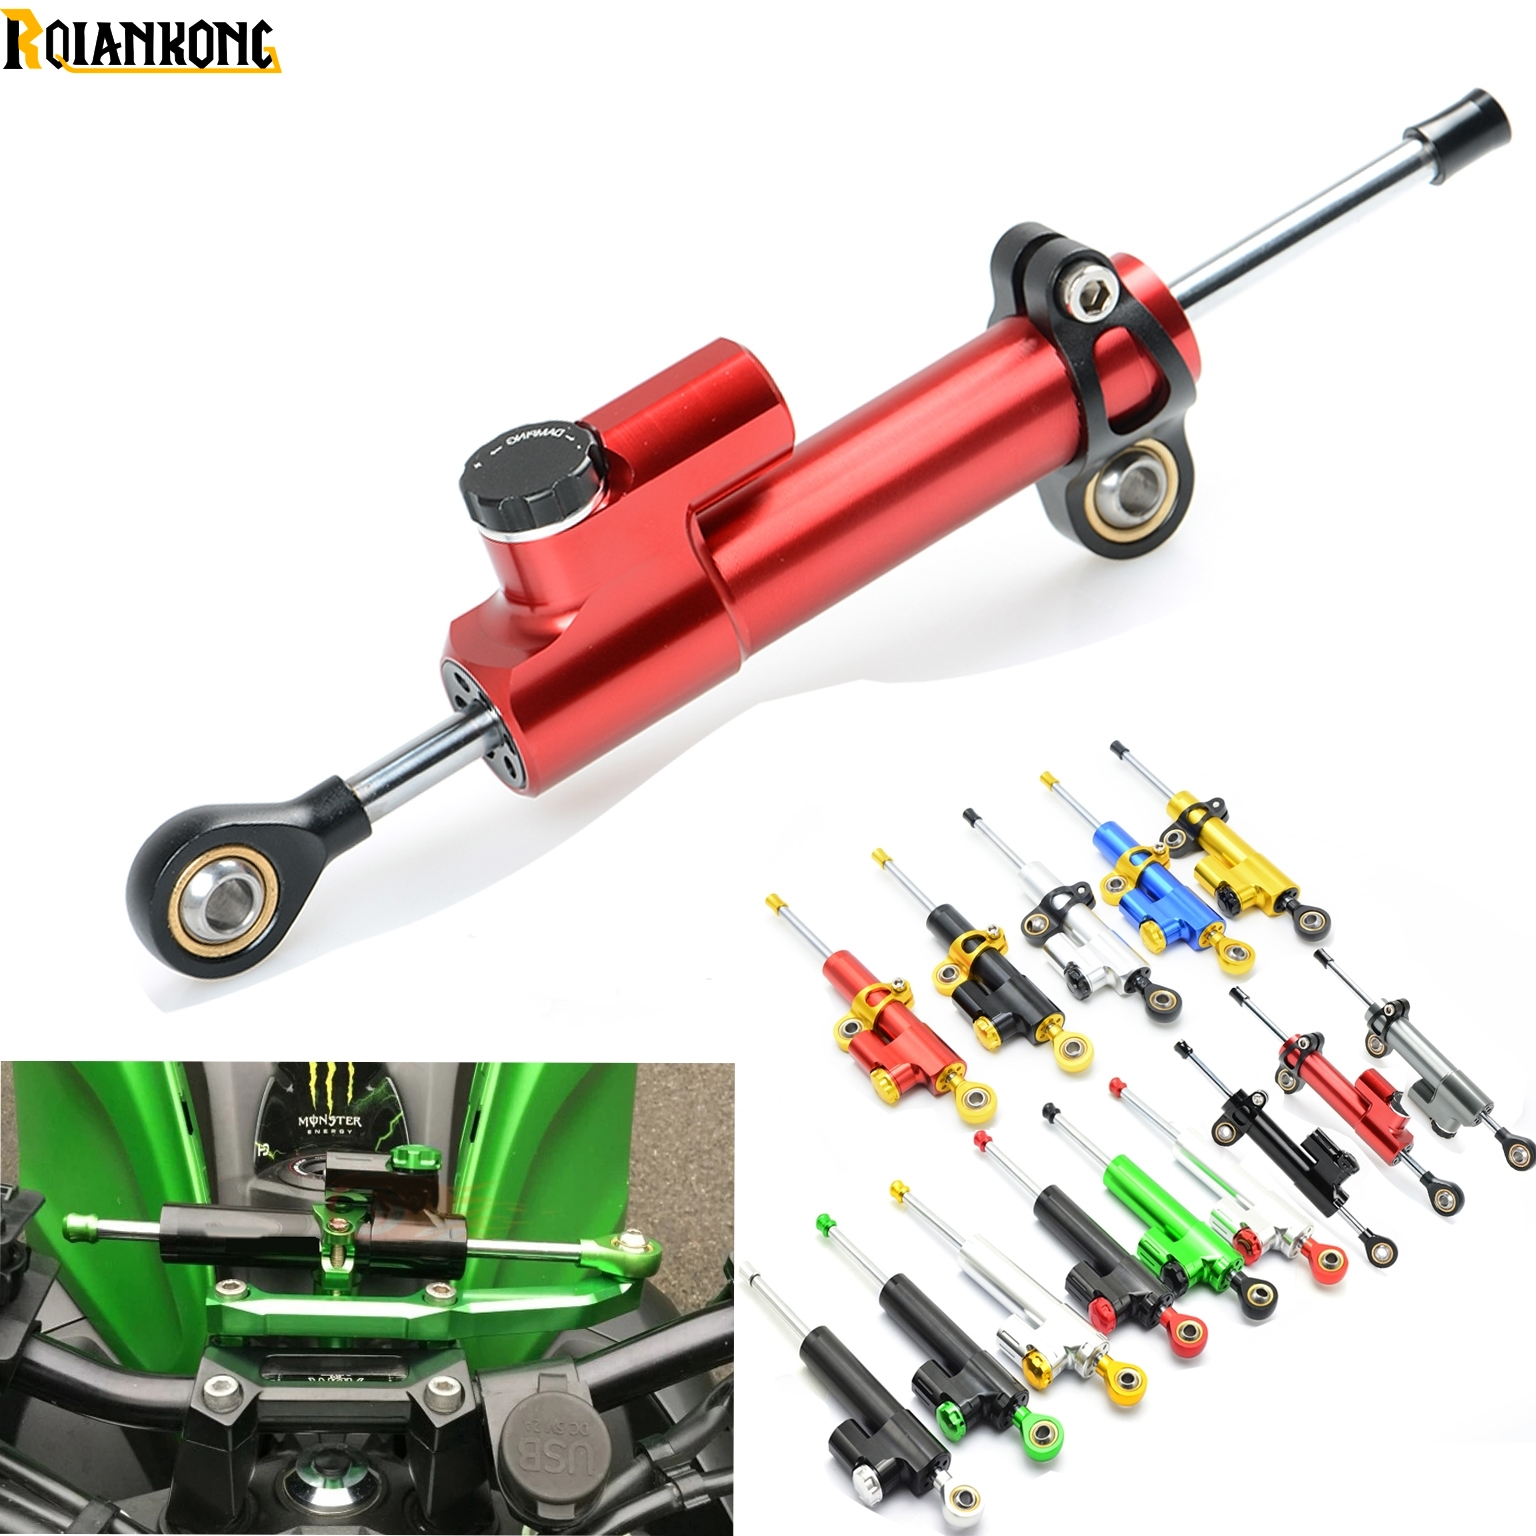 CNC Aluminum Motorcycle Steering Damper Stabilizer Linear Safe Control for Ducati MONSTER 400 620 695 696 796 821 1100 1200